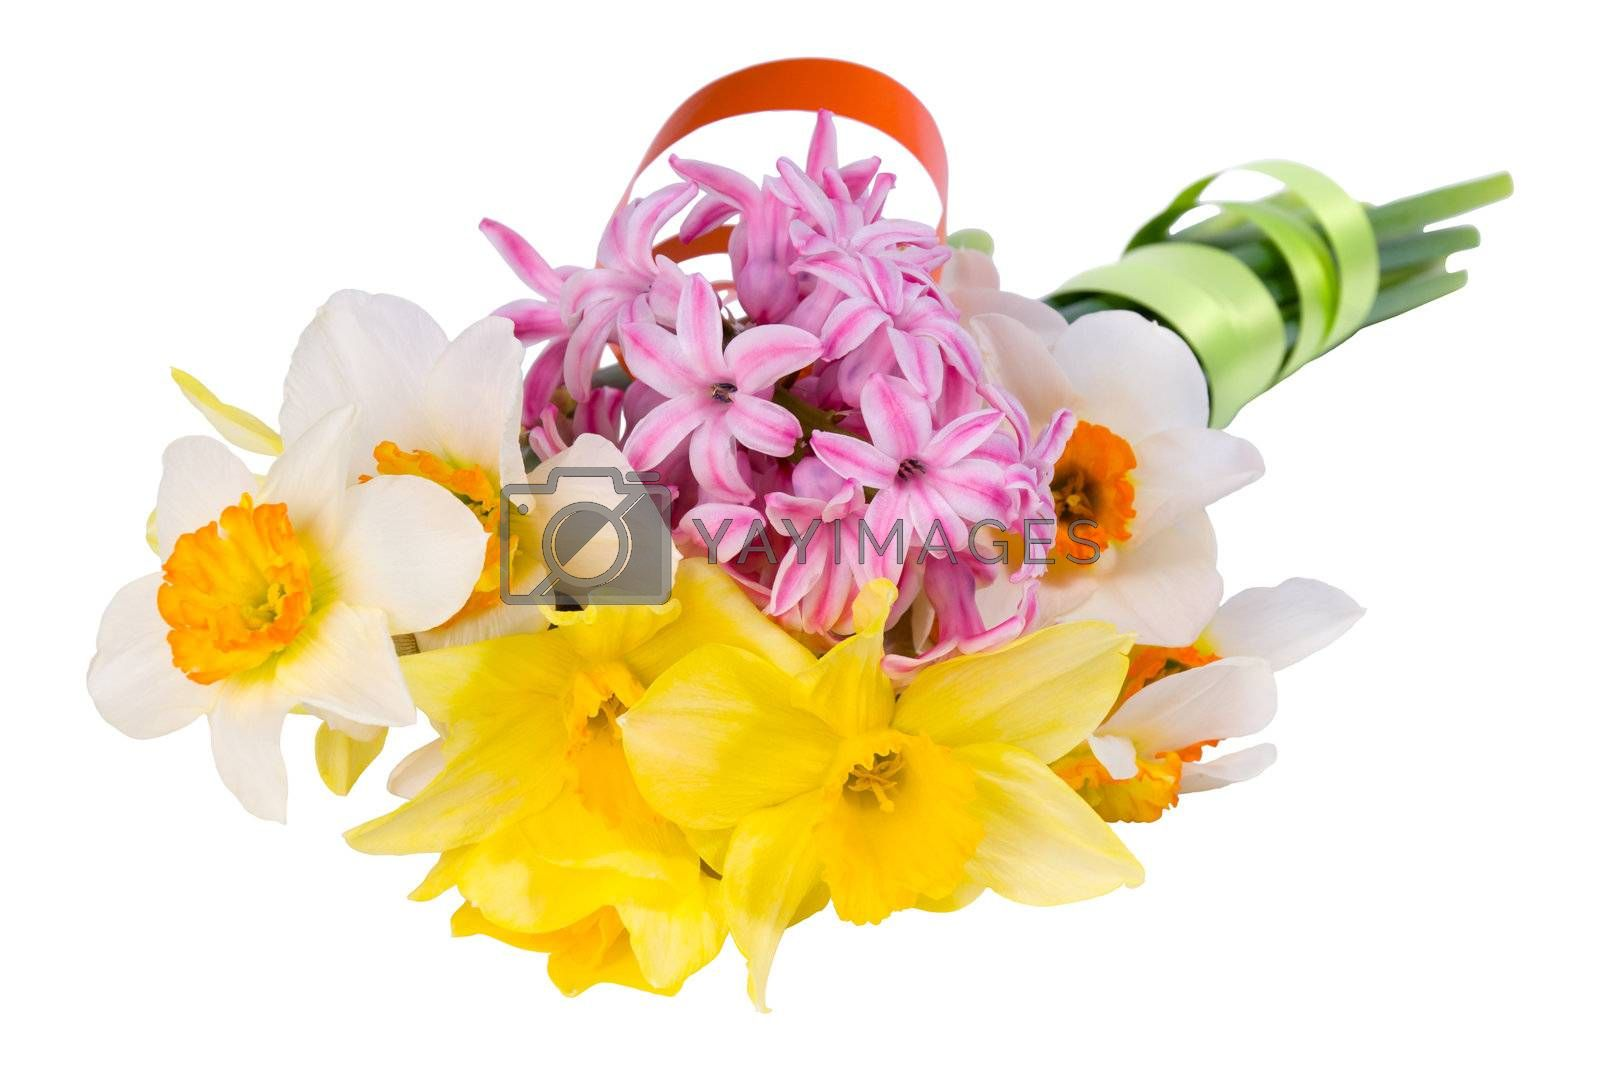 Bouquet of yellow and white narcissus, pink hyacinth with green and orange tape isolated on a white background